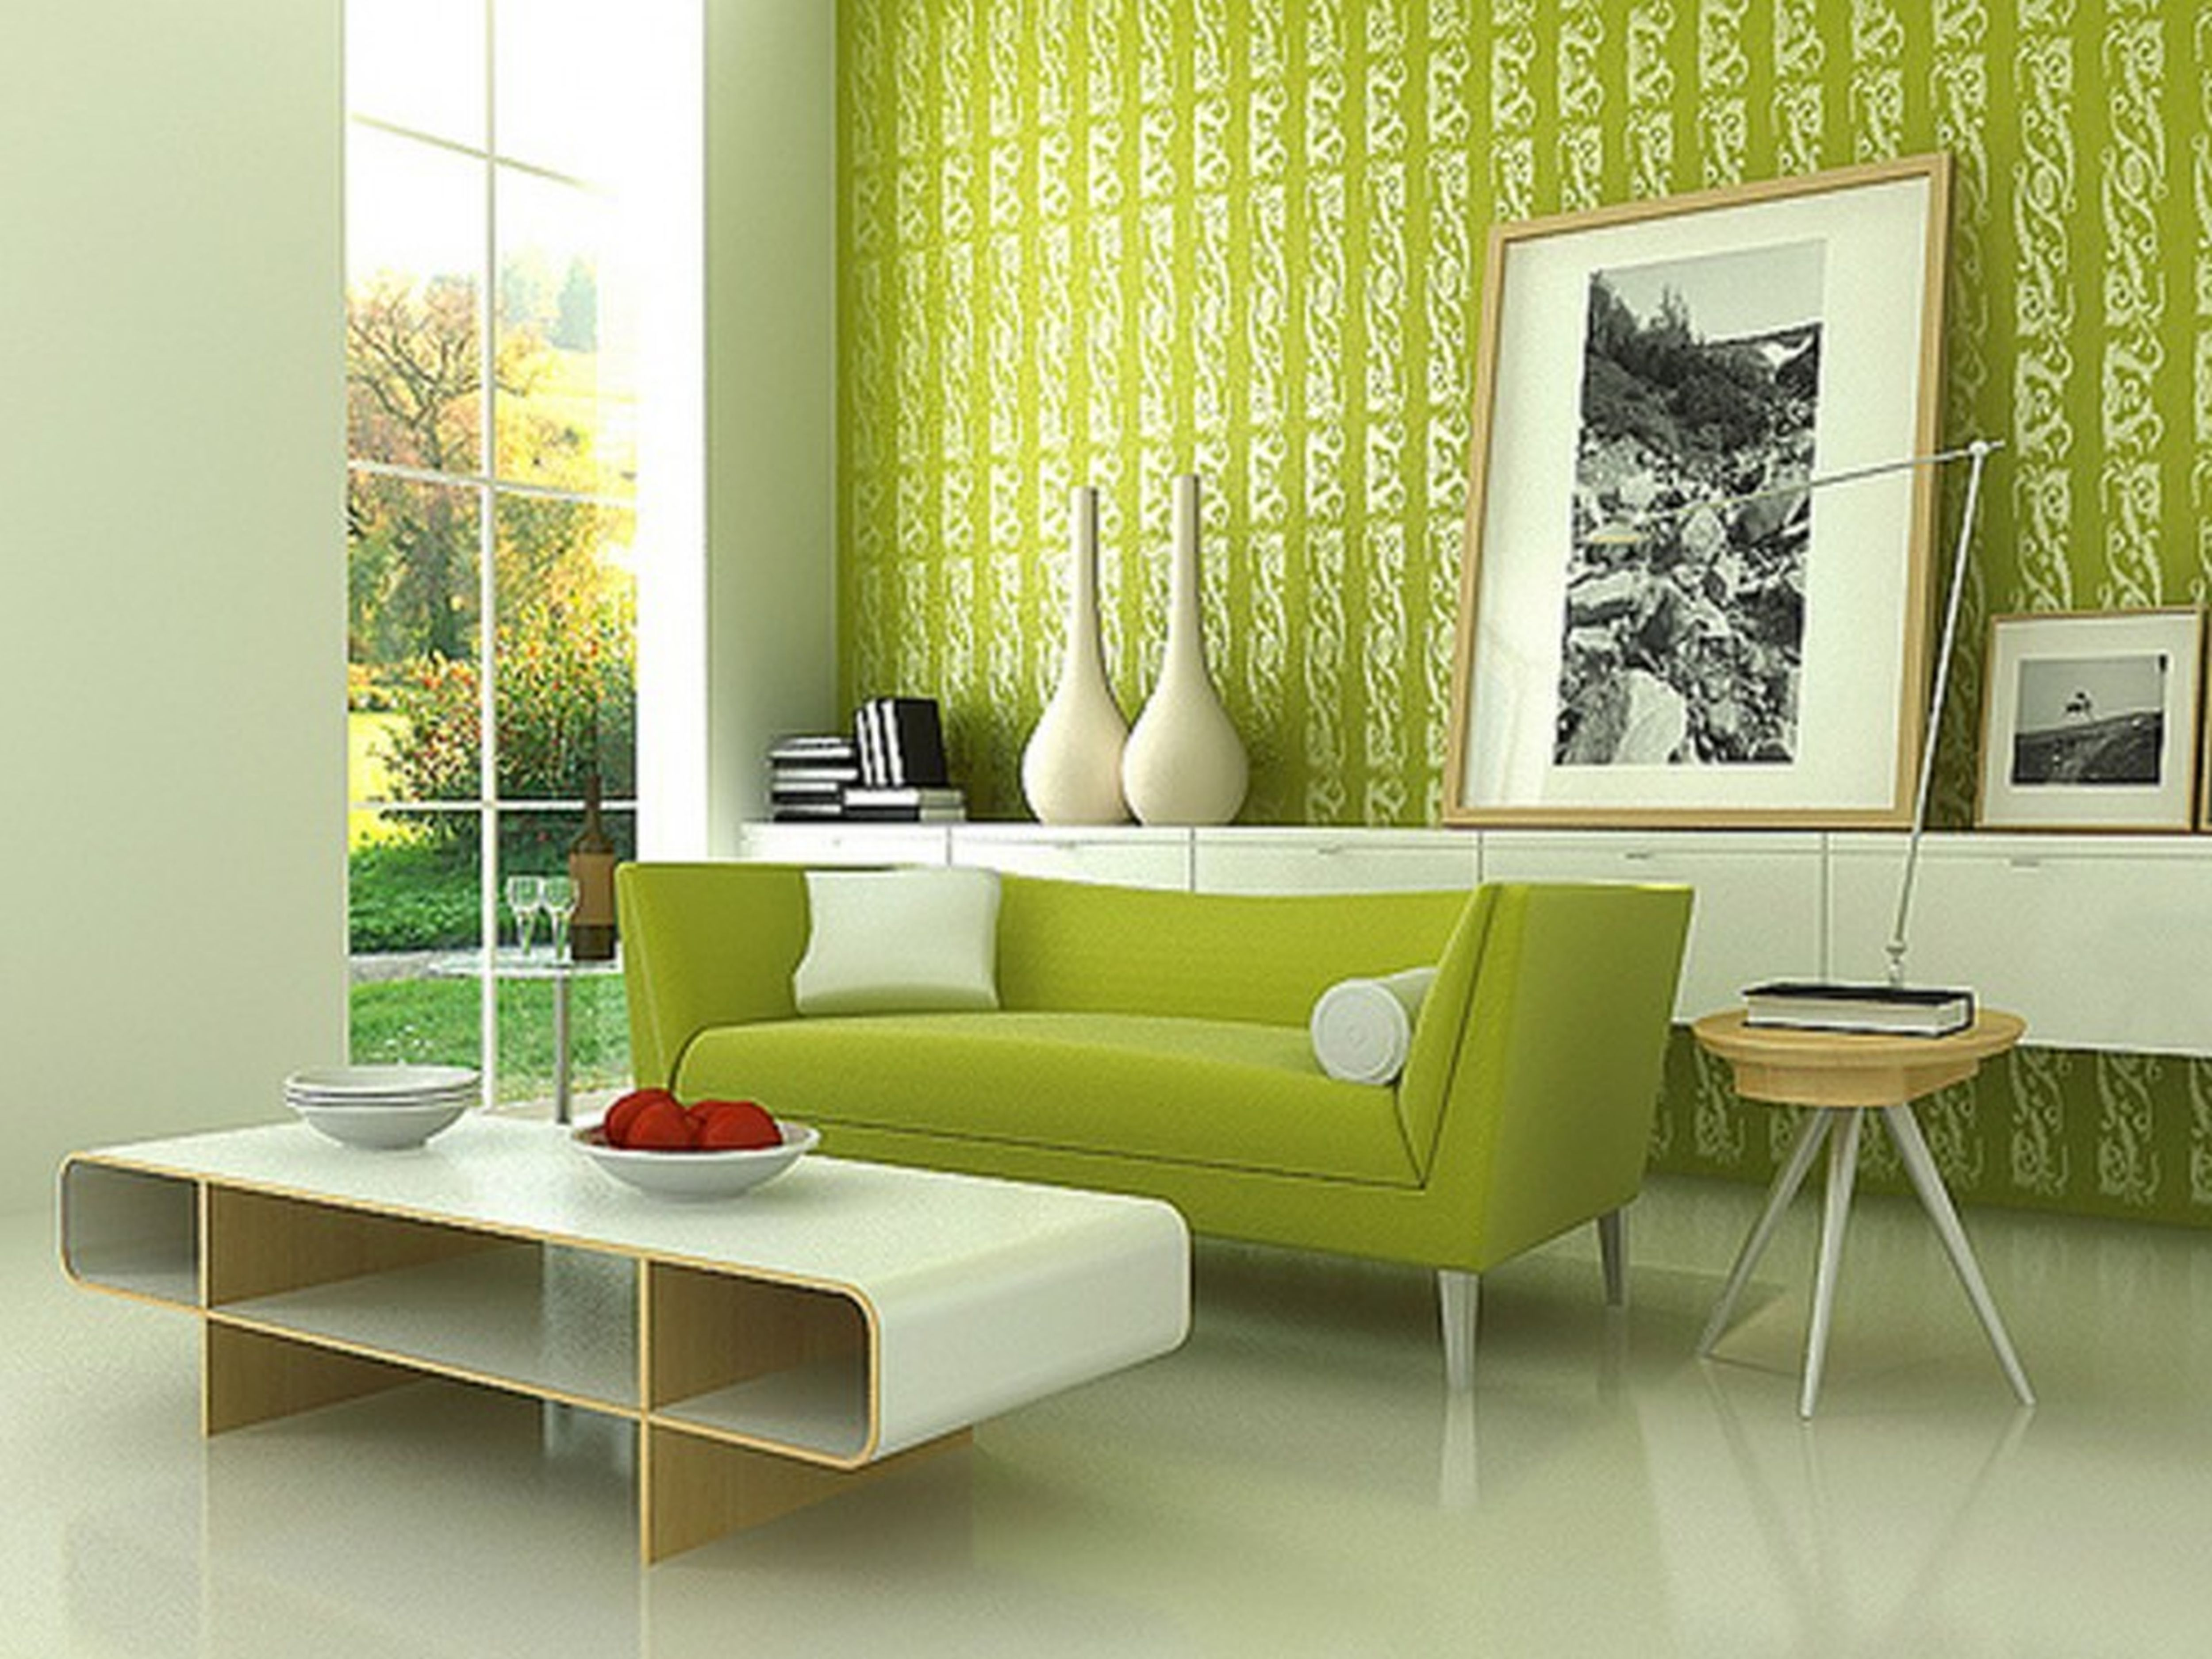 Home Interior Wall Decorations Green Interior Design For Your Home